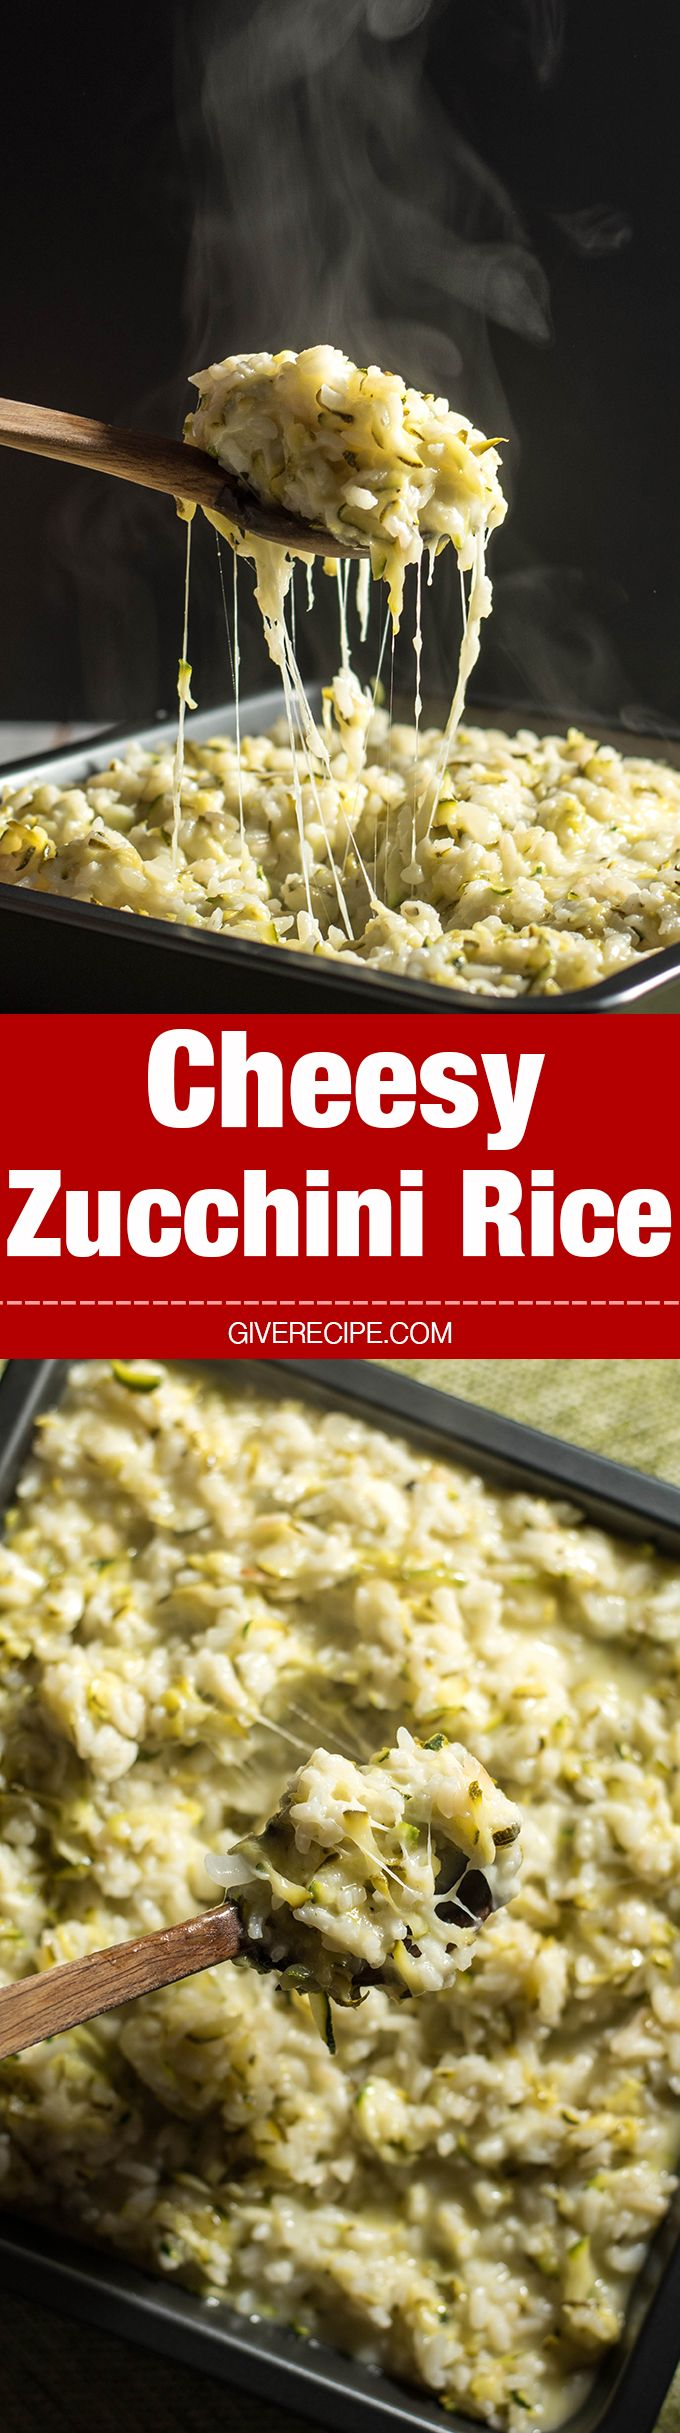 Cheesy Zucchini Rice will be the most favorite side of your family in summer. Despite all the zucchini inside! 100% guaranteed! - giverecipe.com